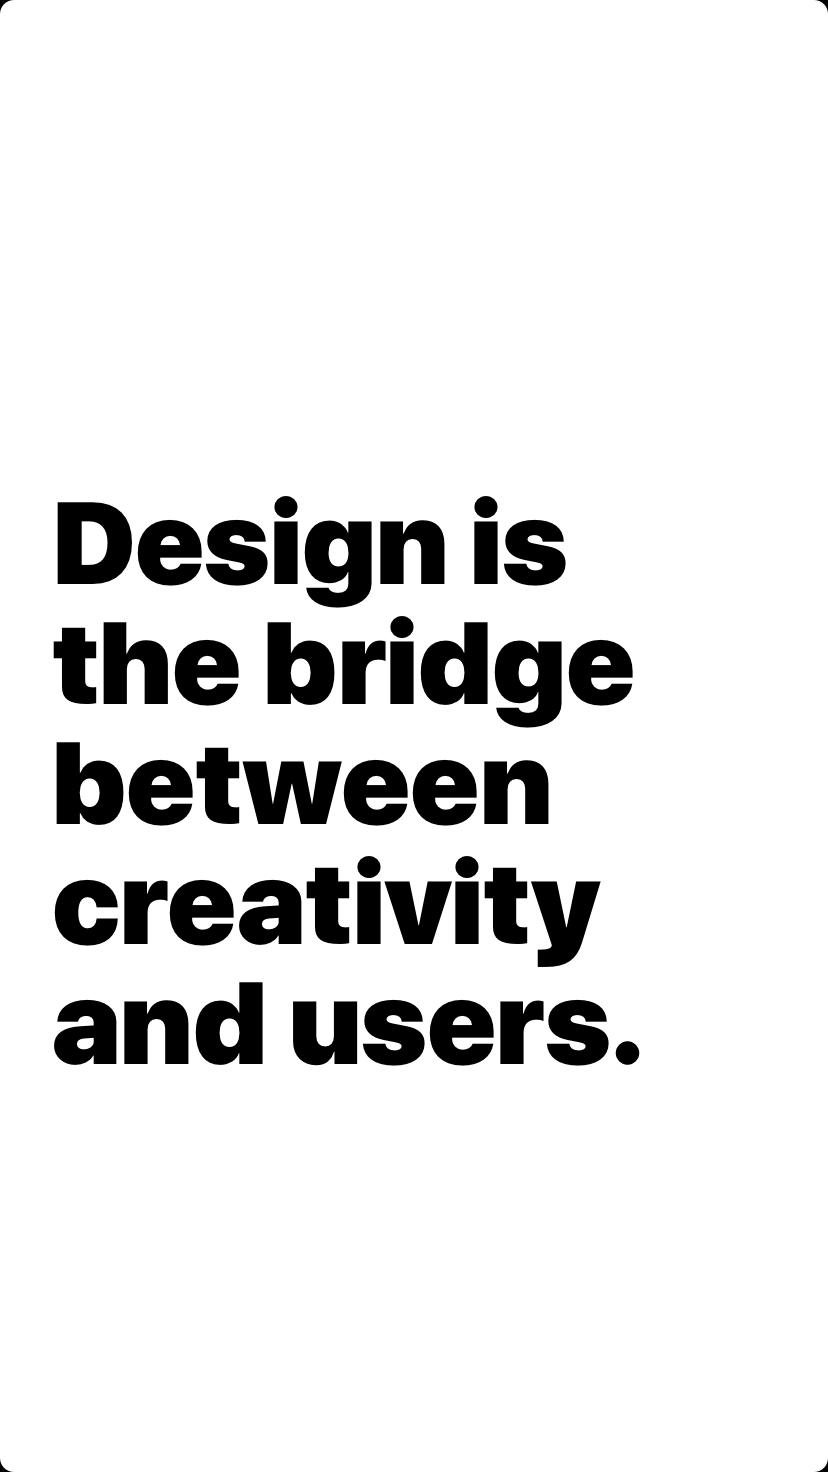 Design is the bridge between creativity and users.